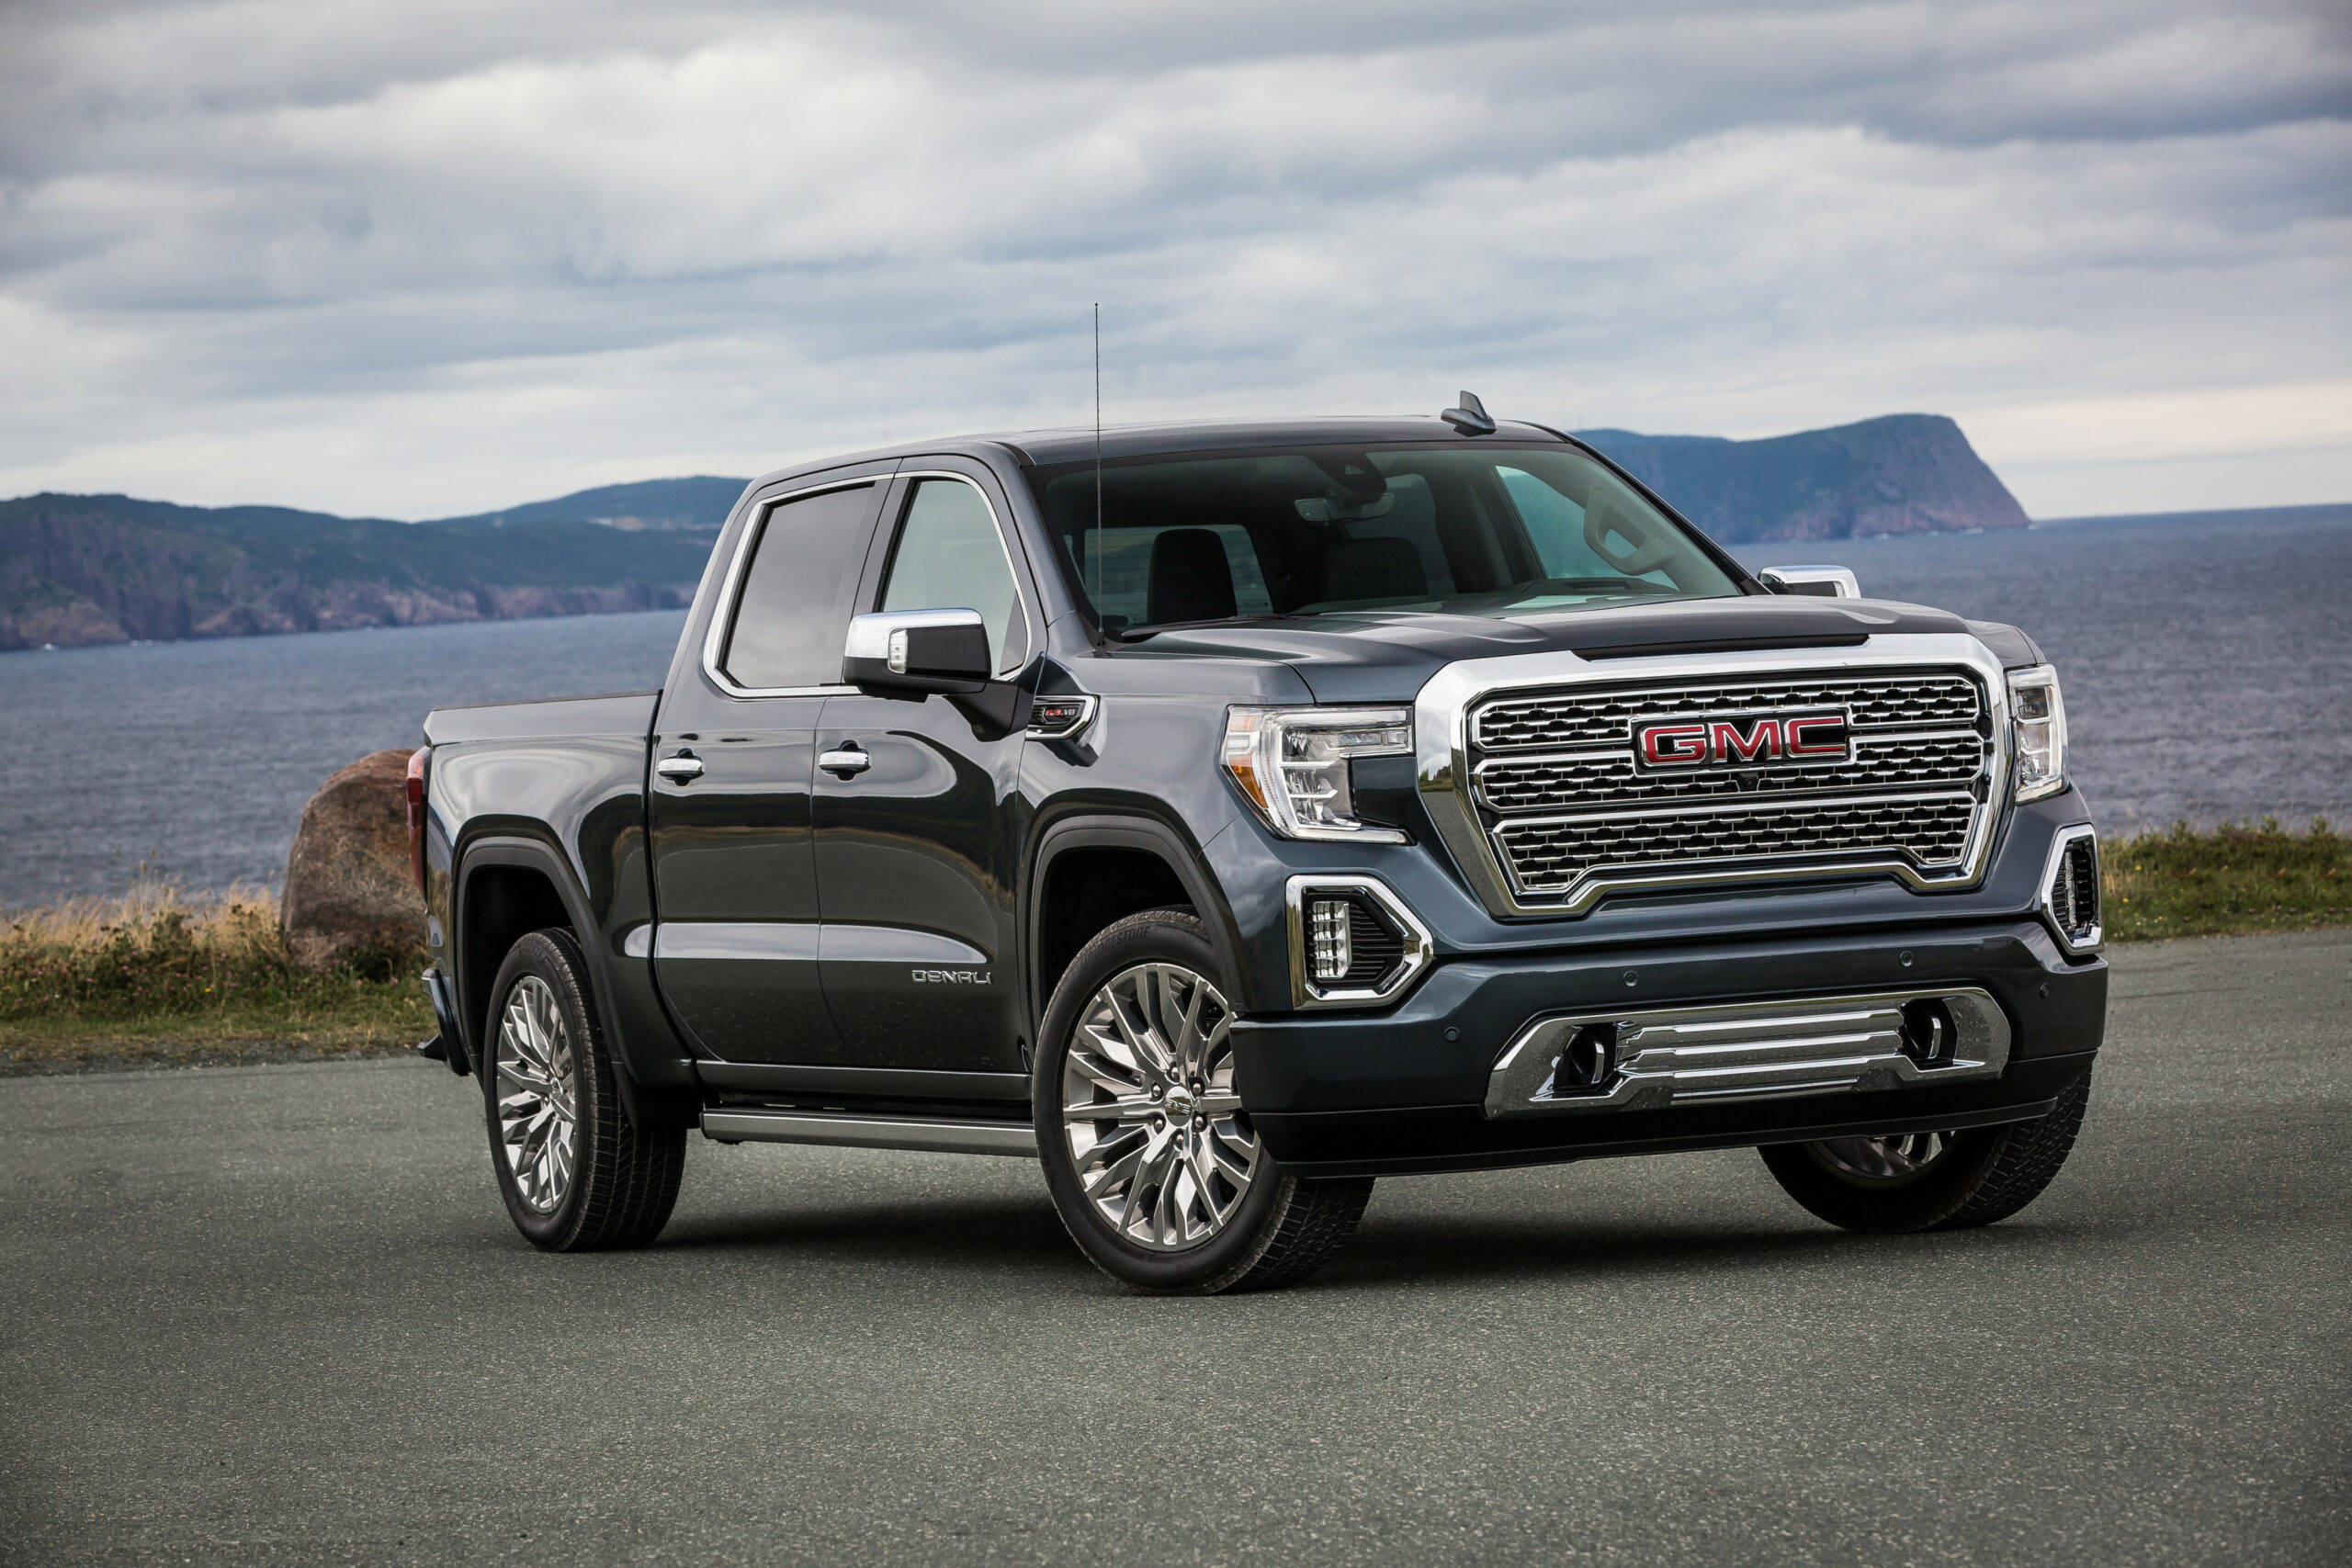 GMC Pressroom - Middle East - 7 Sierra Denali - gmc new truck 2020